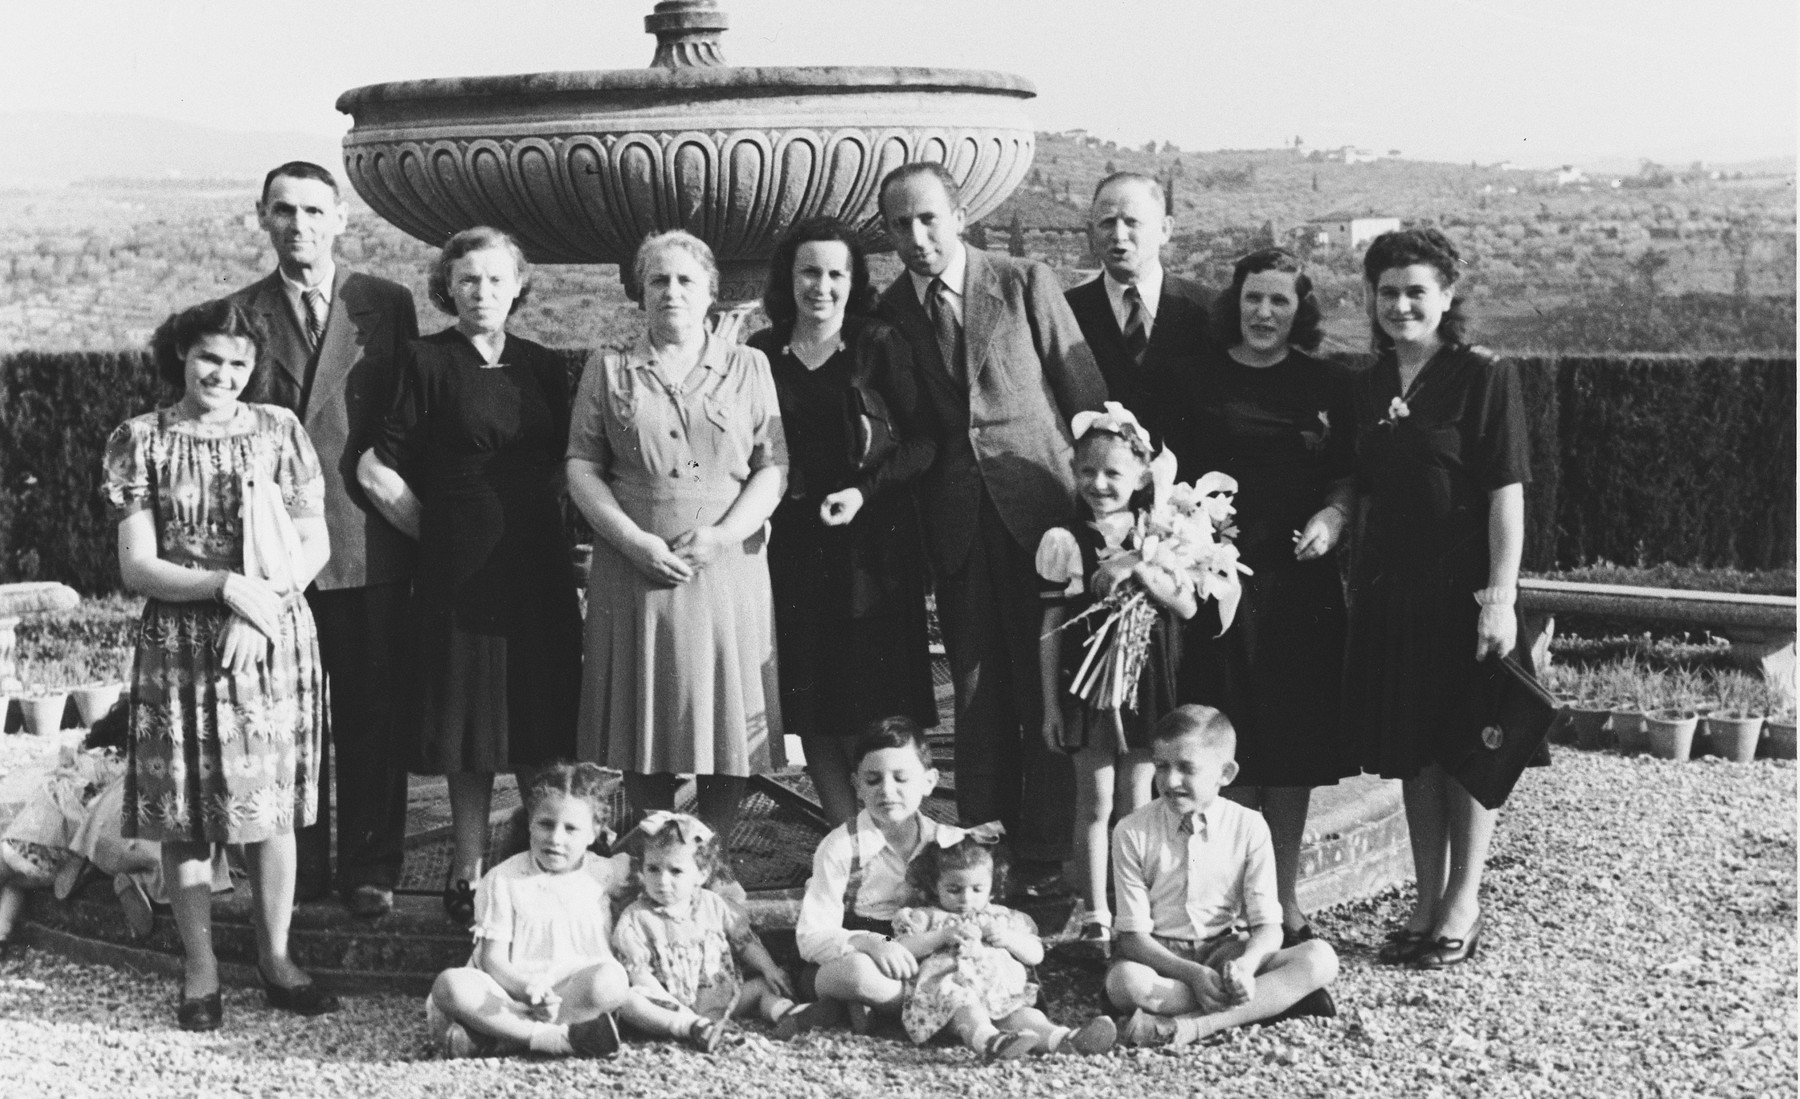 Group portrait of members of a kibbutz hachshara (Zionist collective) in Ponte Emma (near Florence).  Among those pictured are members of the Telerant and Puzarisky families.